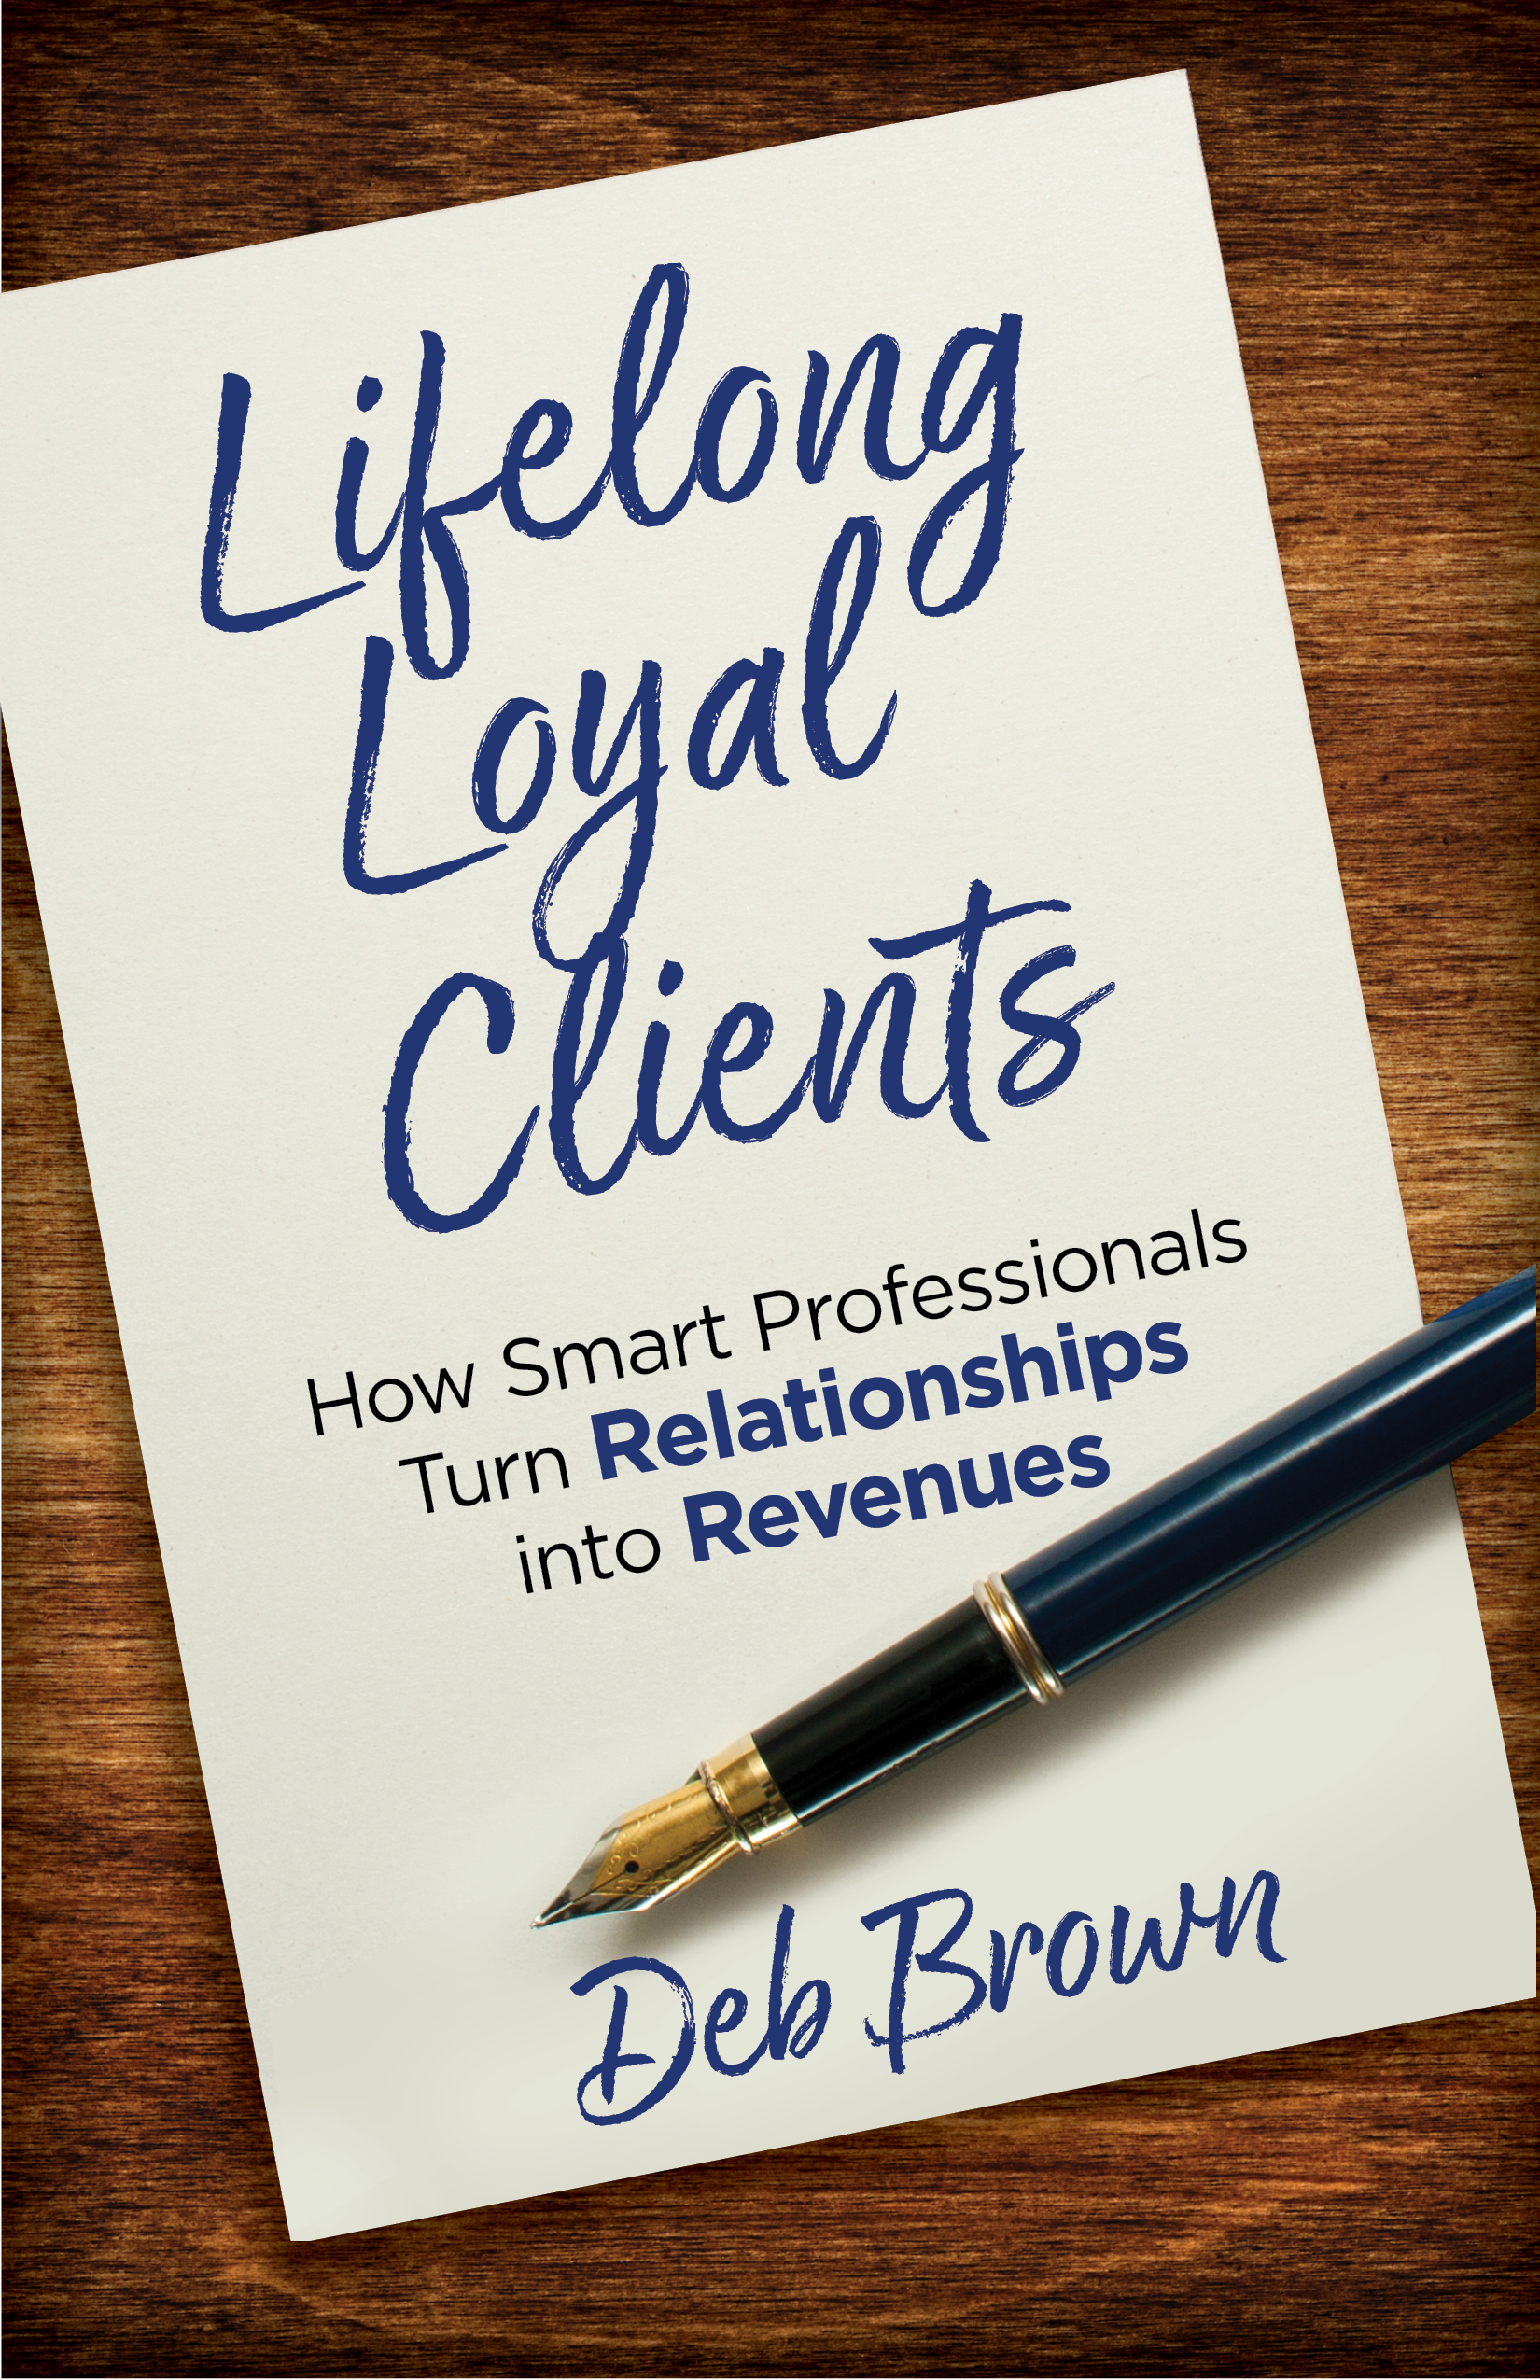 Lifelong Loyal Clients